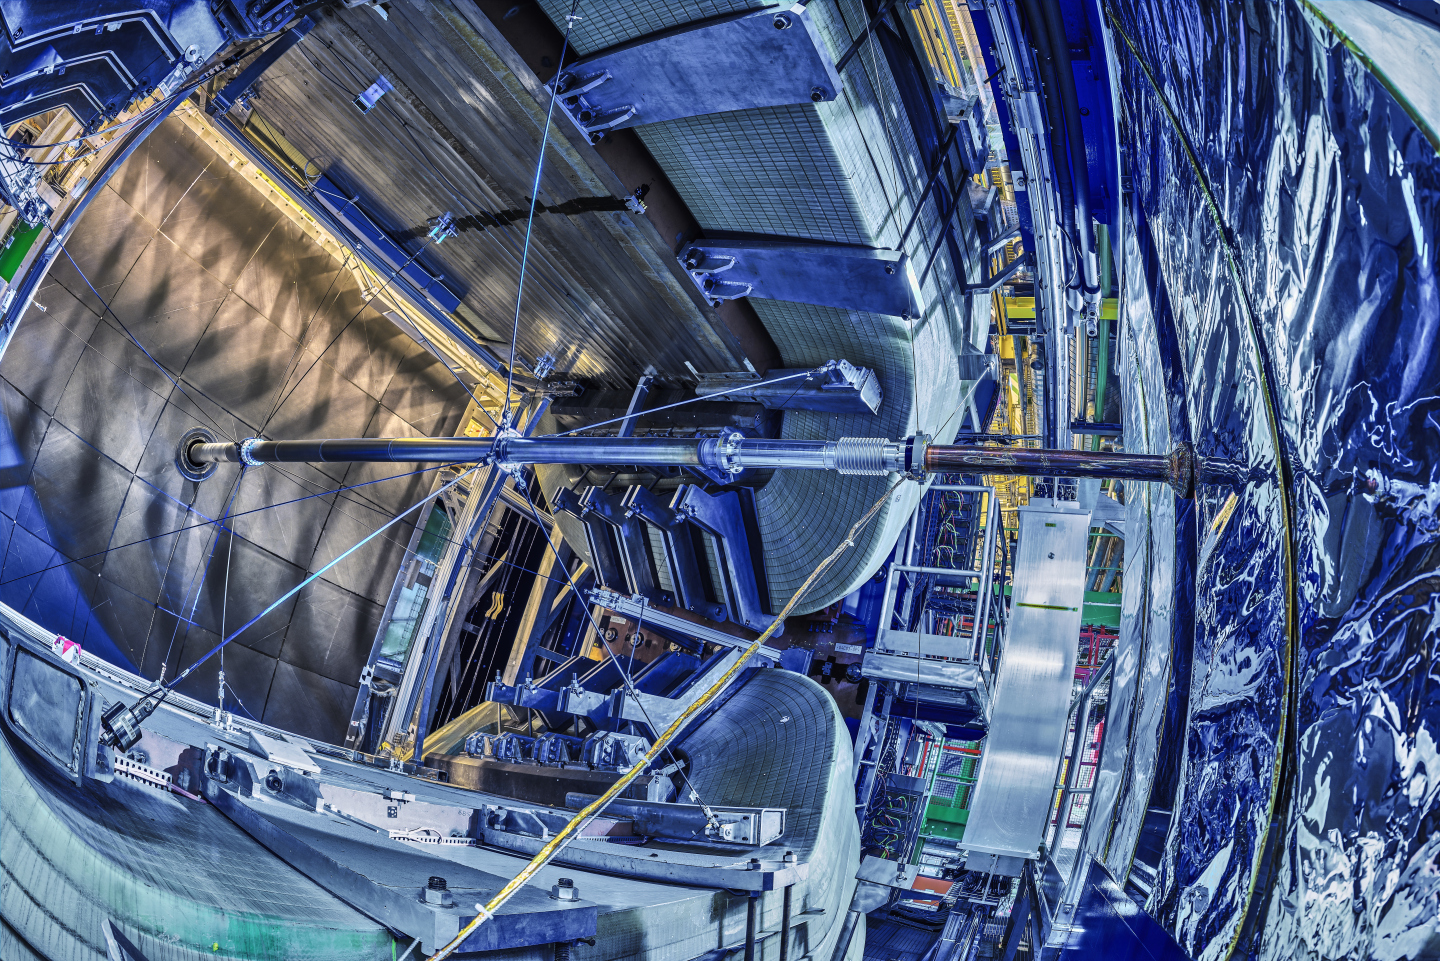 The LHCb experiment is one of the four large experiments at the Large Hadron Collider at CERN, situated underground on the Franco-Swiss border near Geneva. Credit: CERN